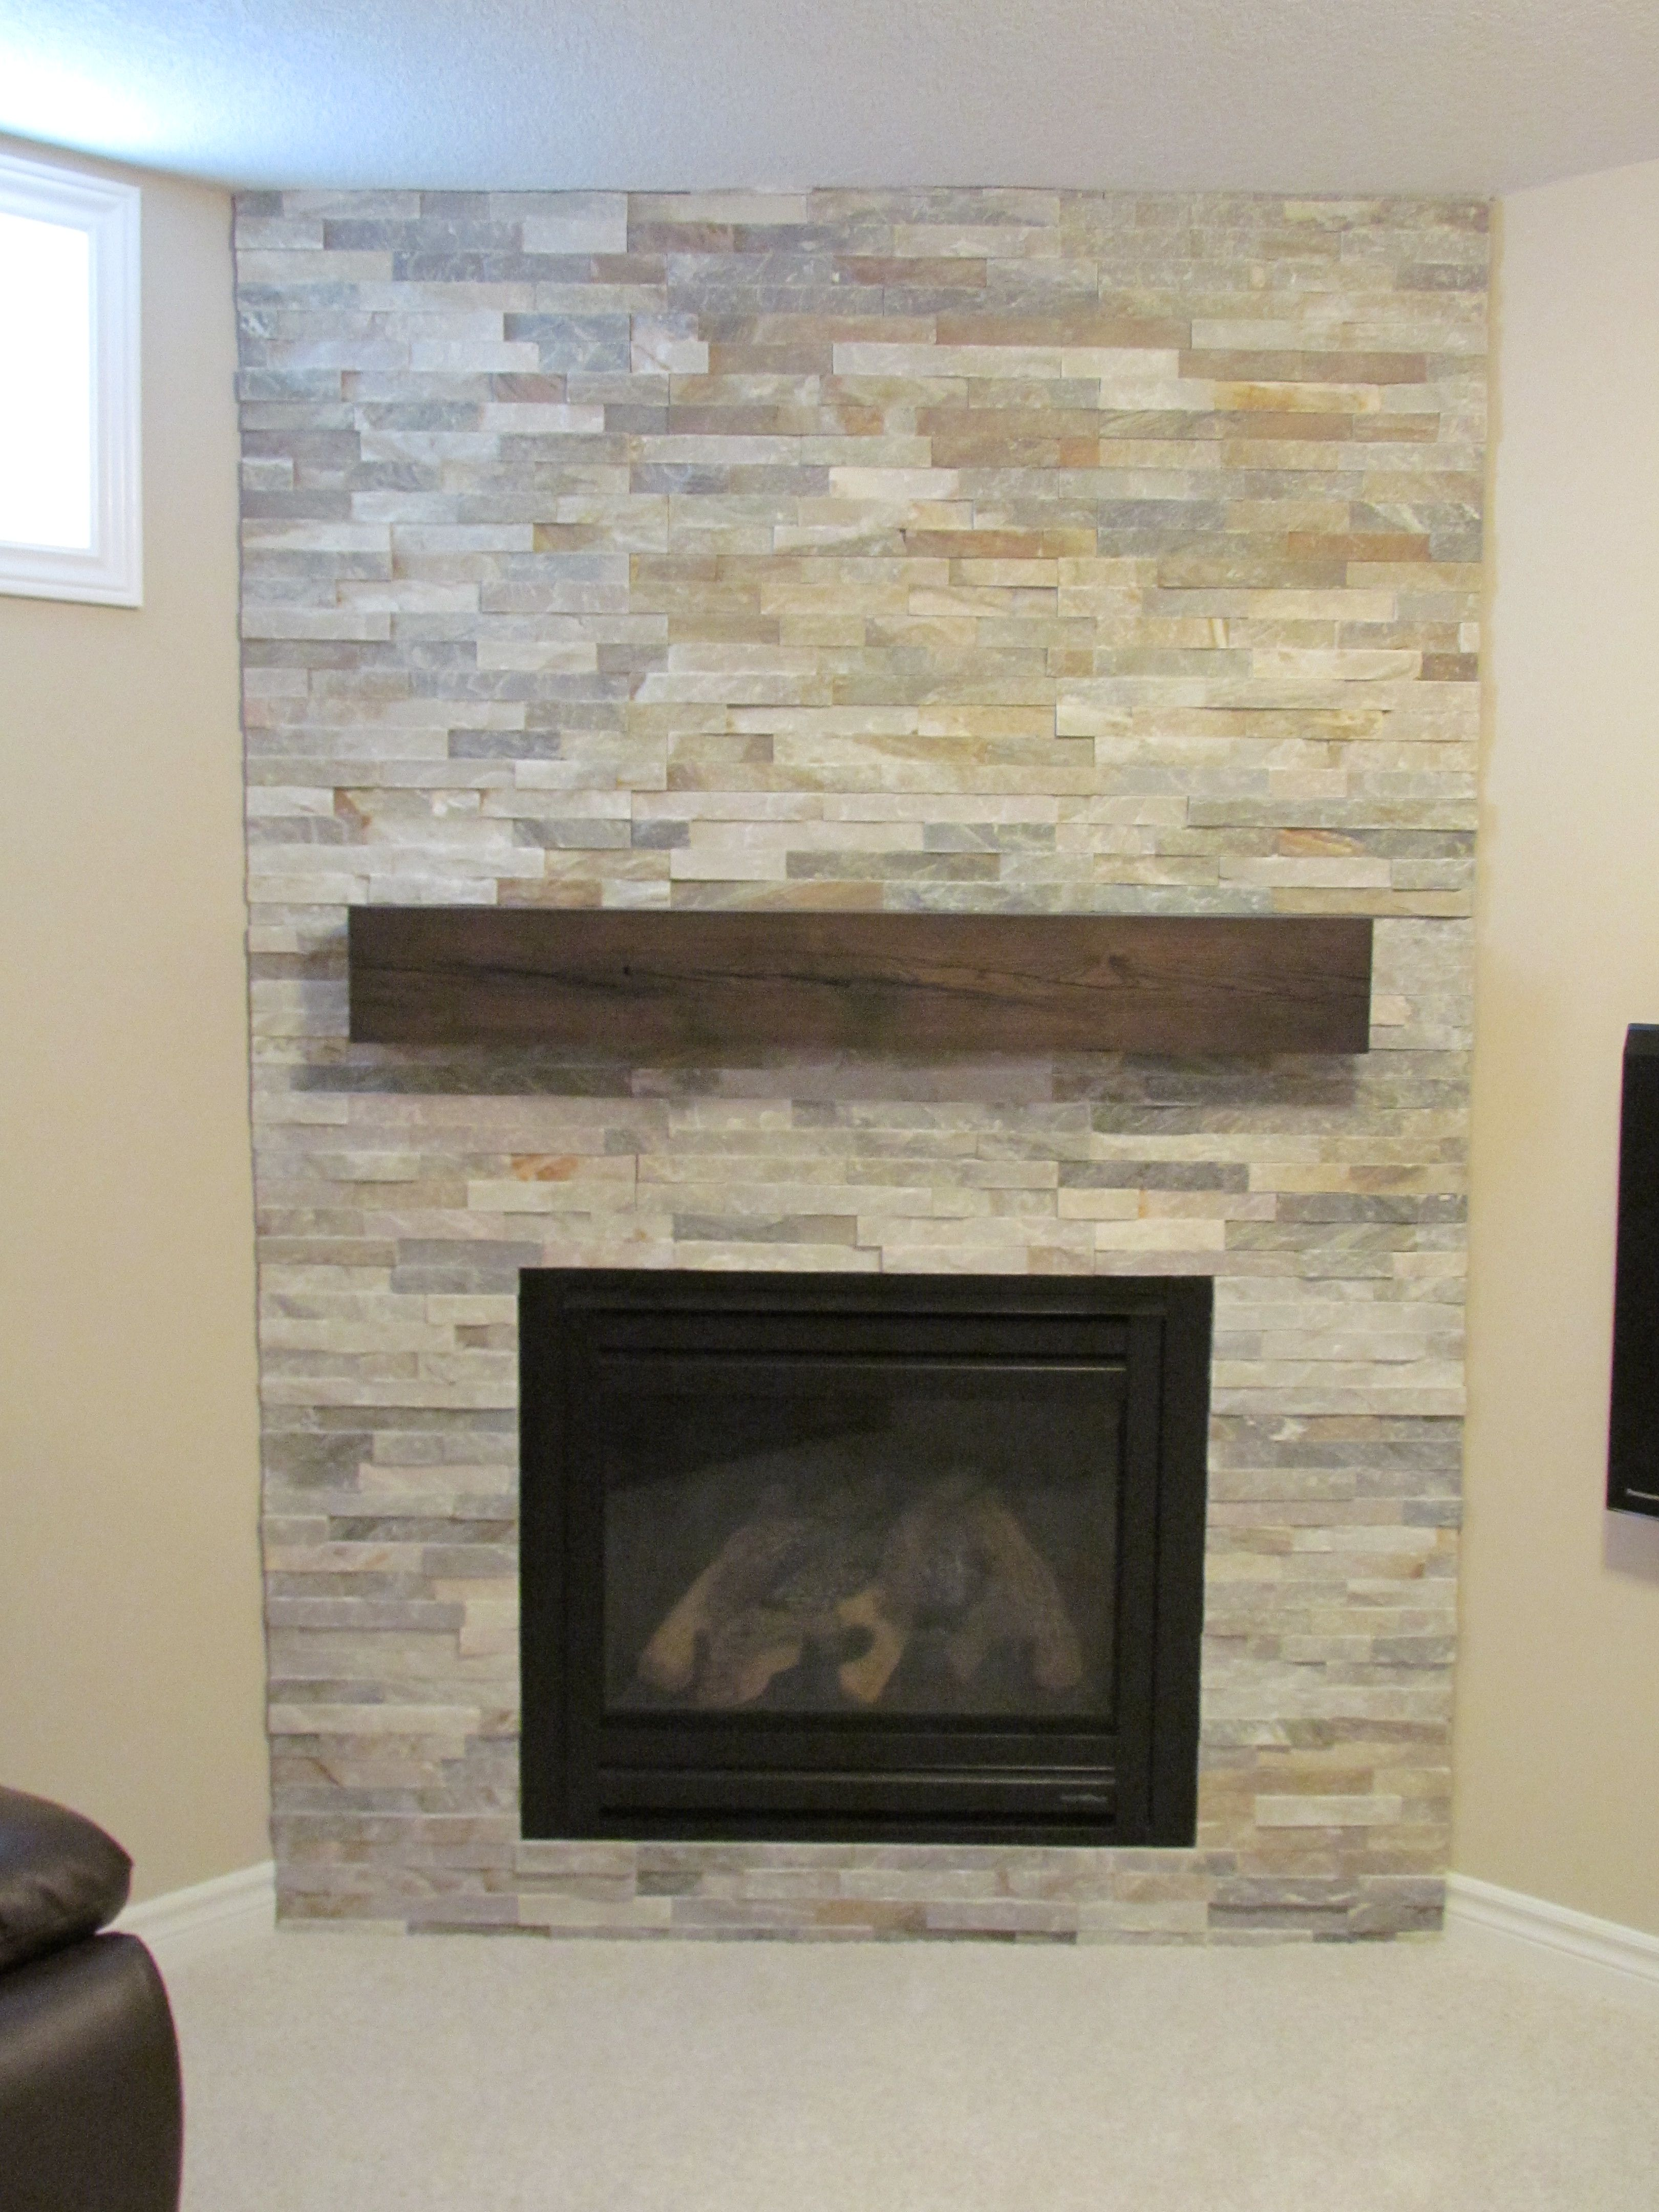 Ledge stone fireplace with rustic reclaimed wood mantel Decor